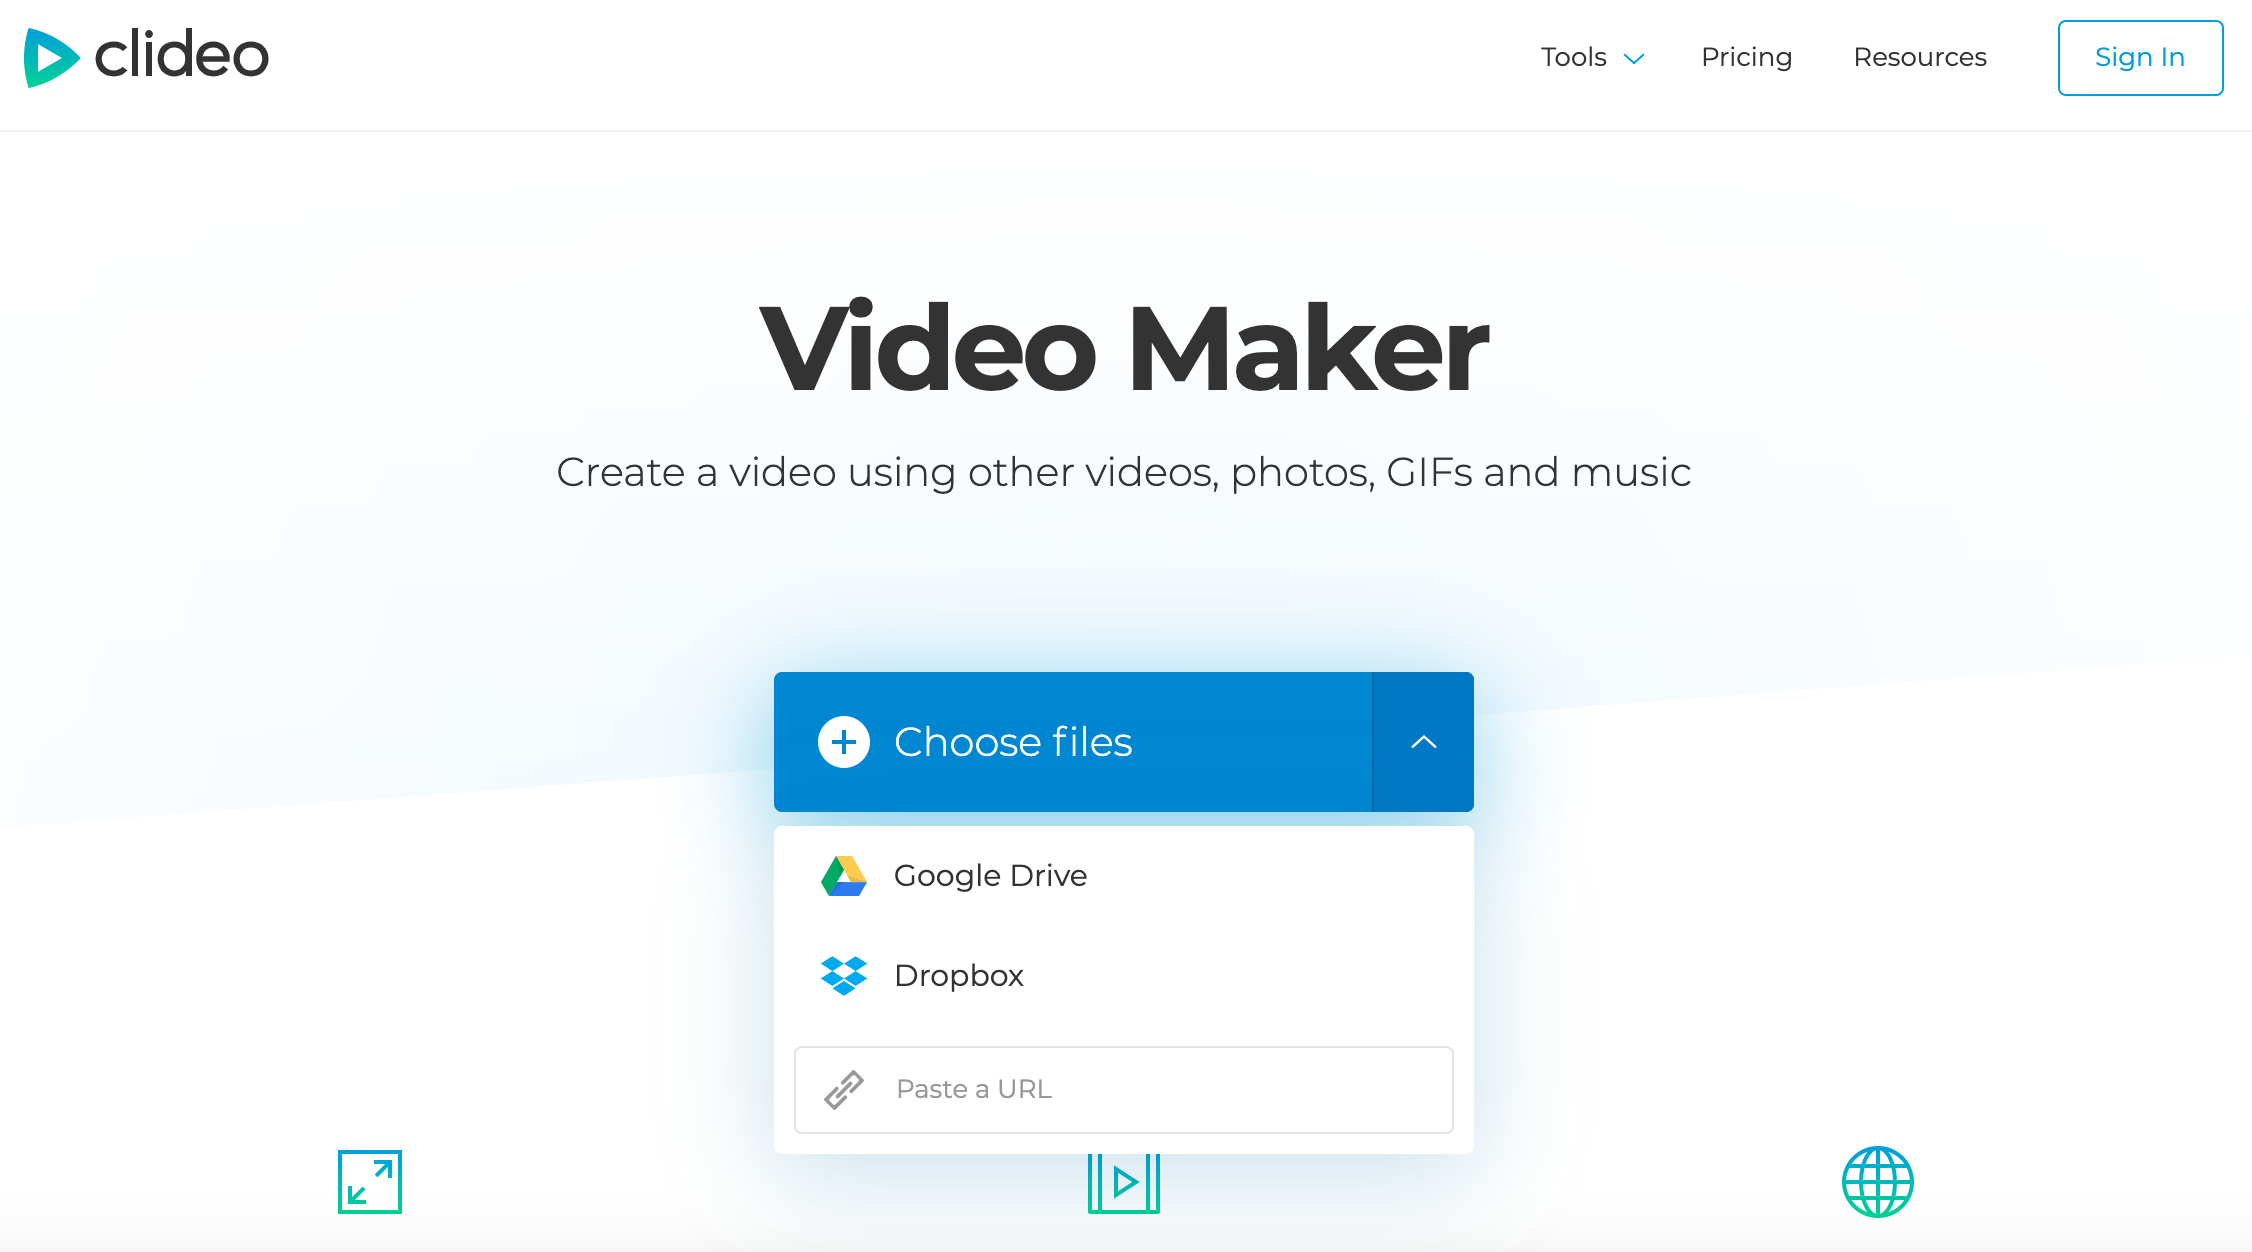 Add files to create a video for YouTube